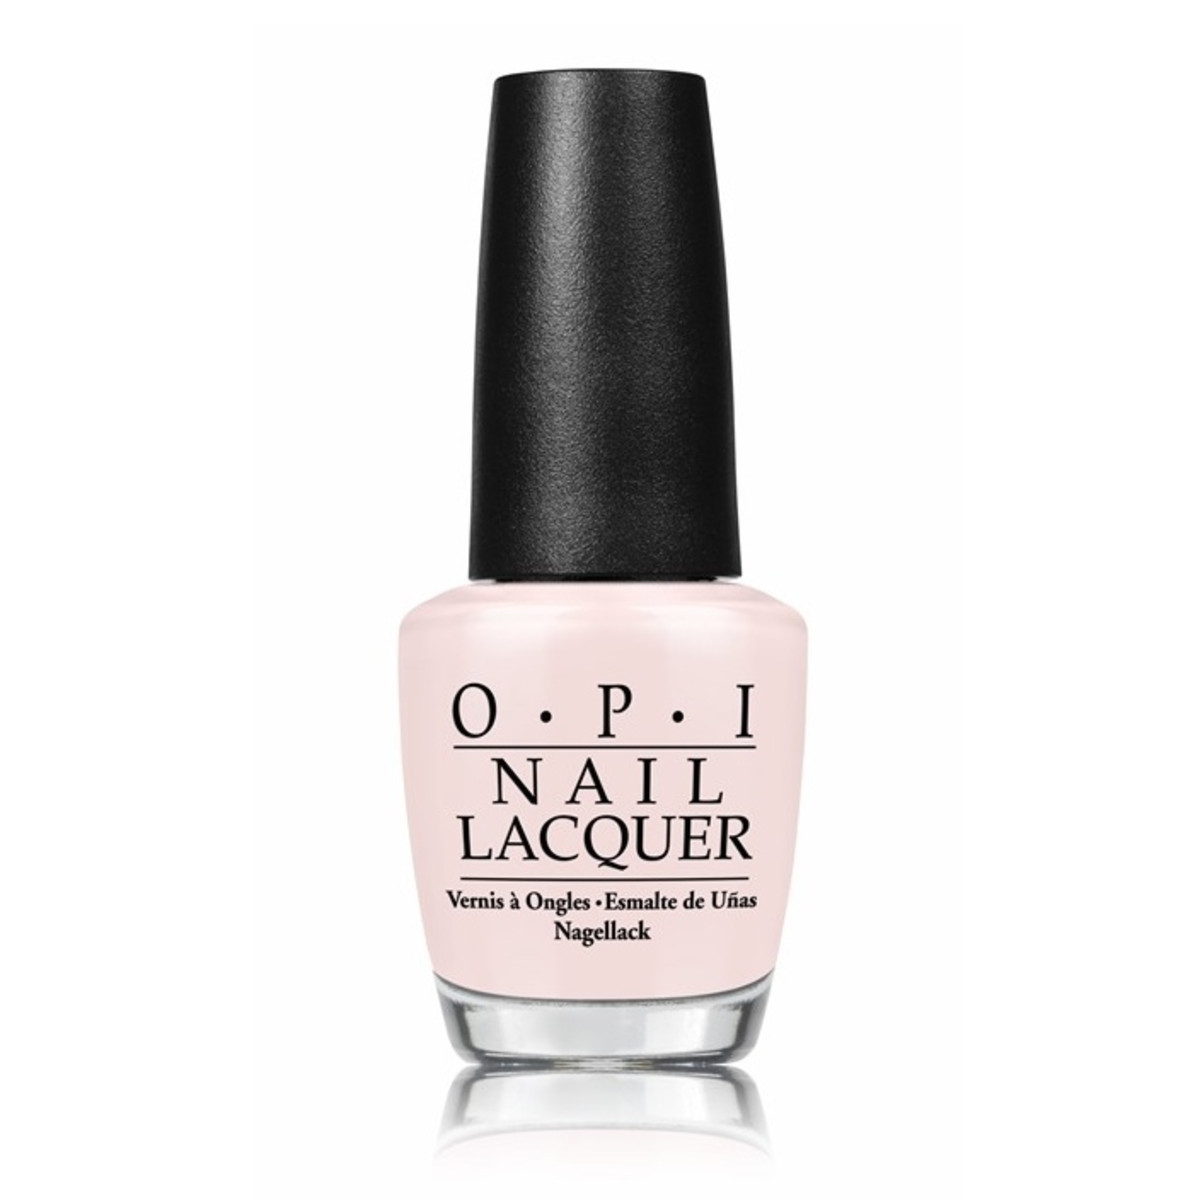 OPI Act Your Beige Soft Shades 2015